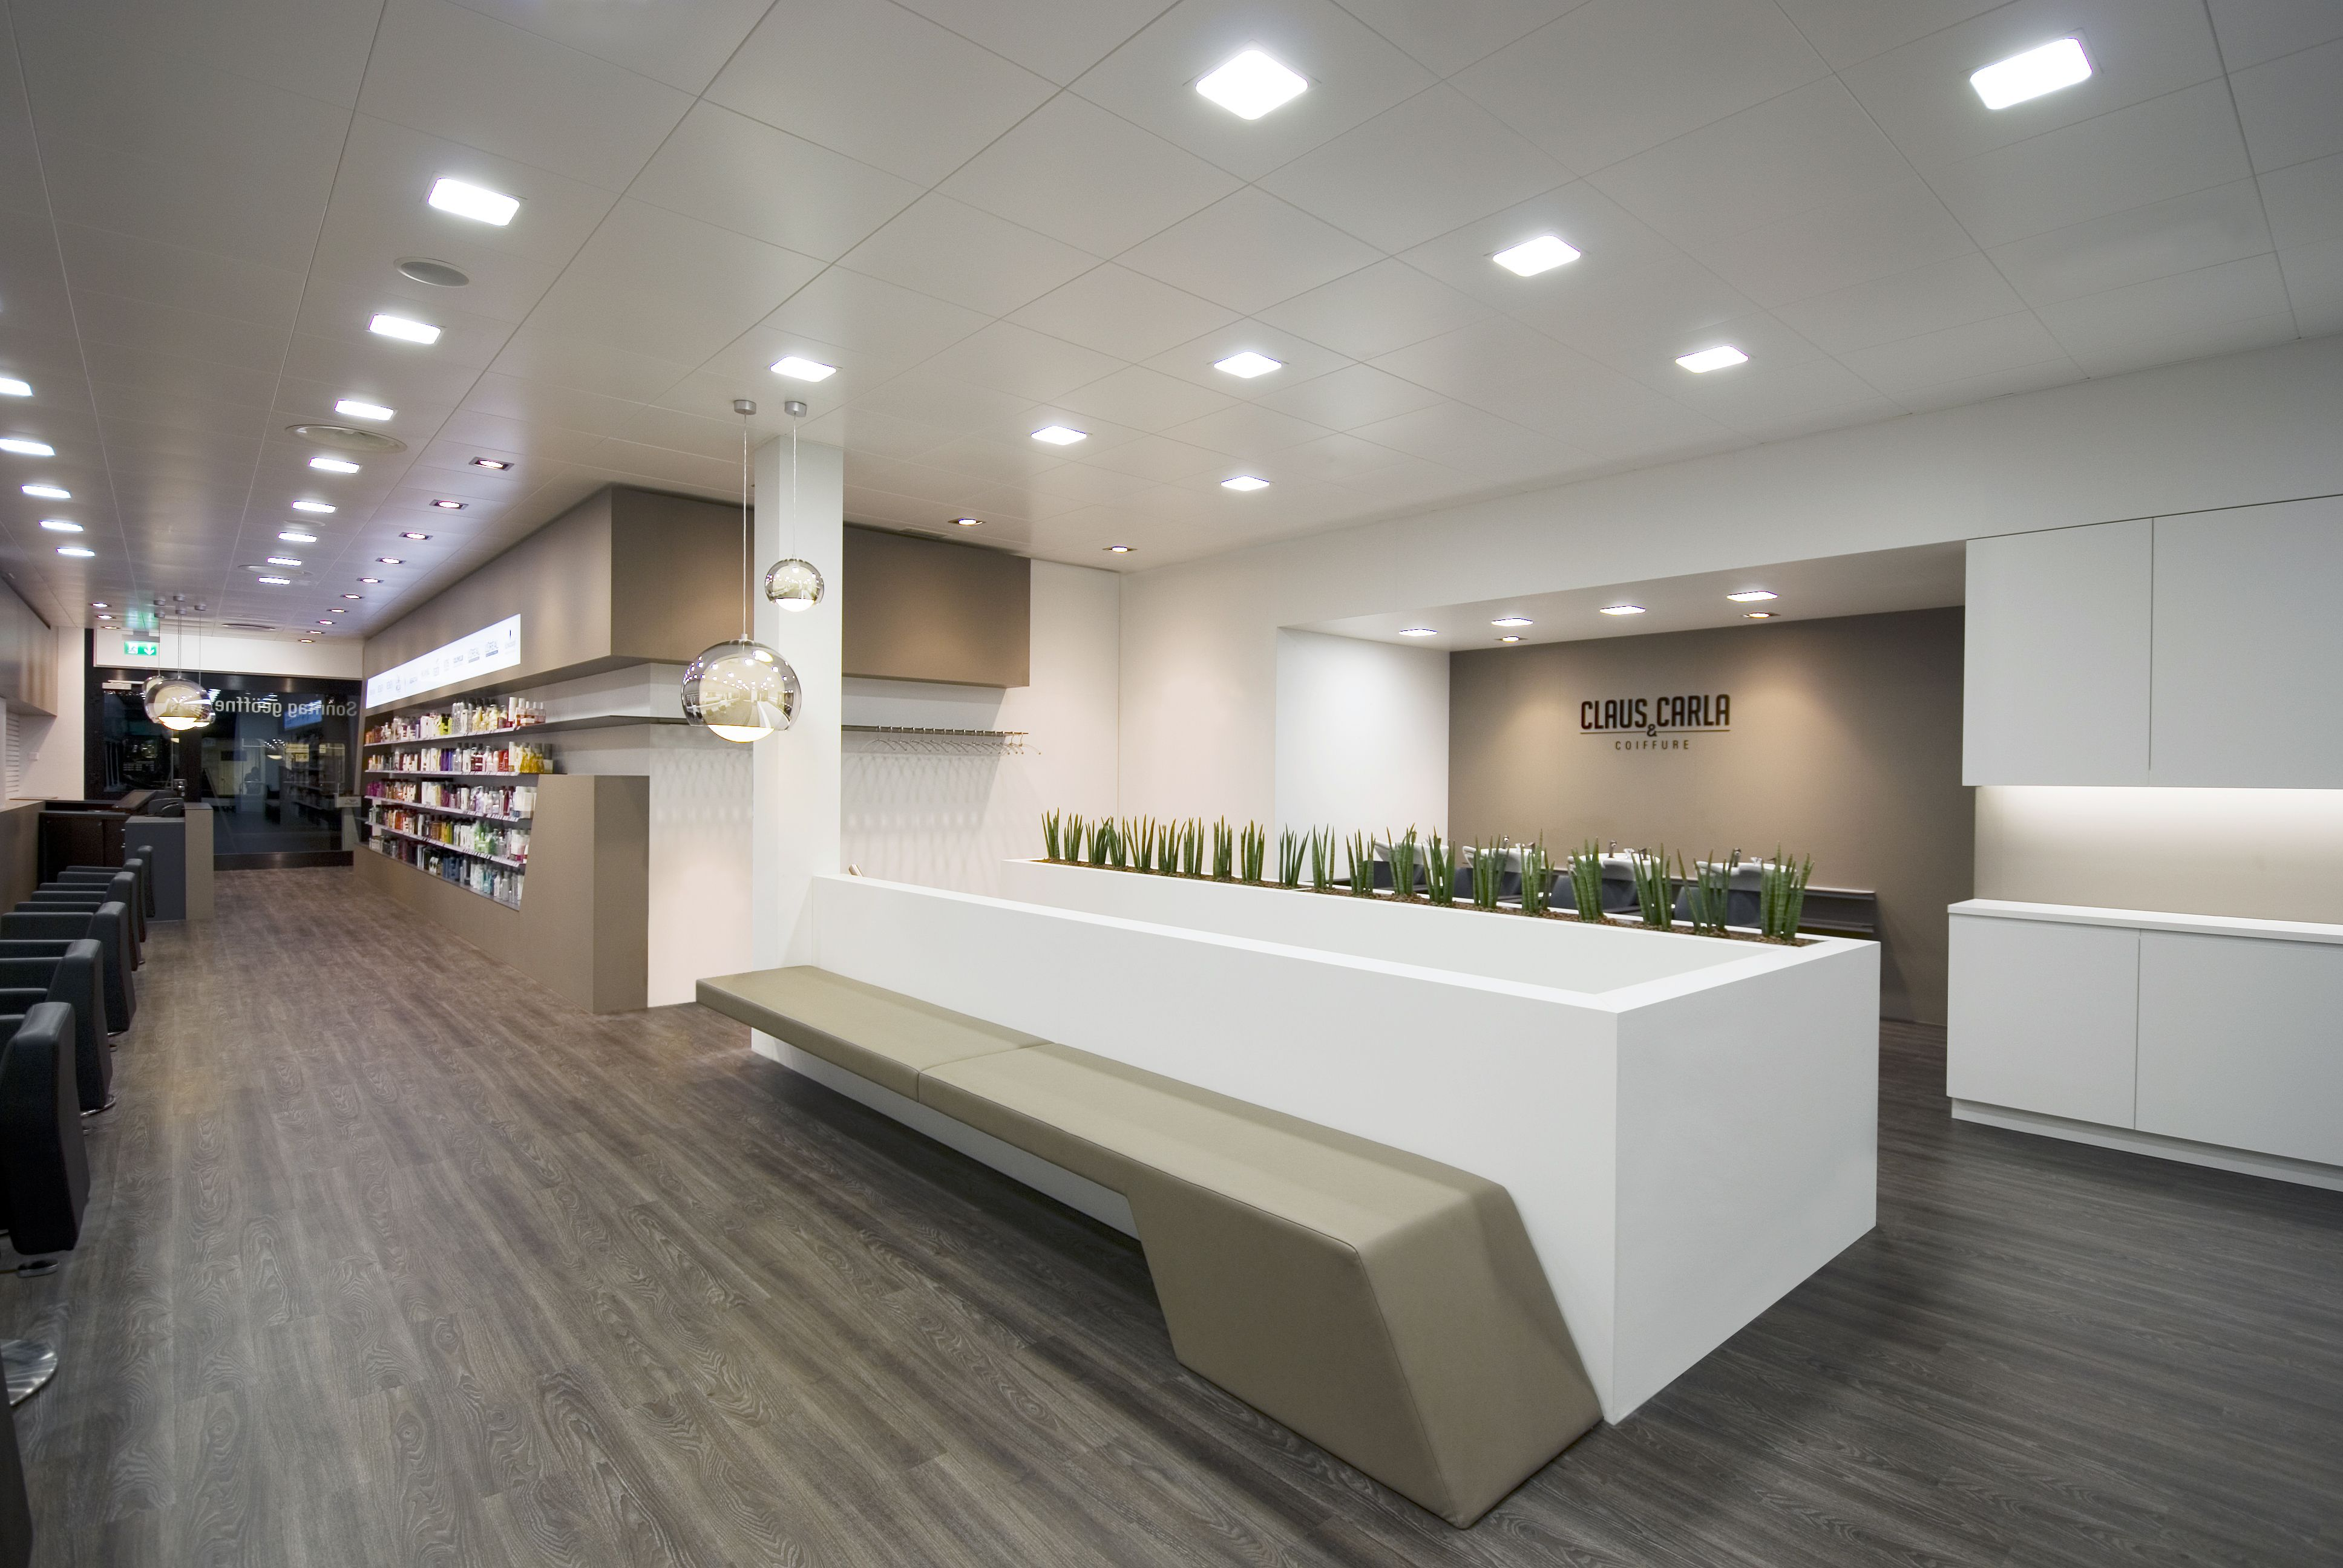 Coiffure claus & carla in basel switzerland. lighting products